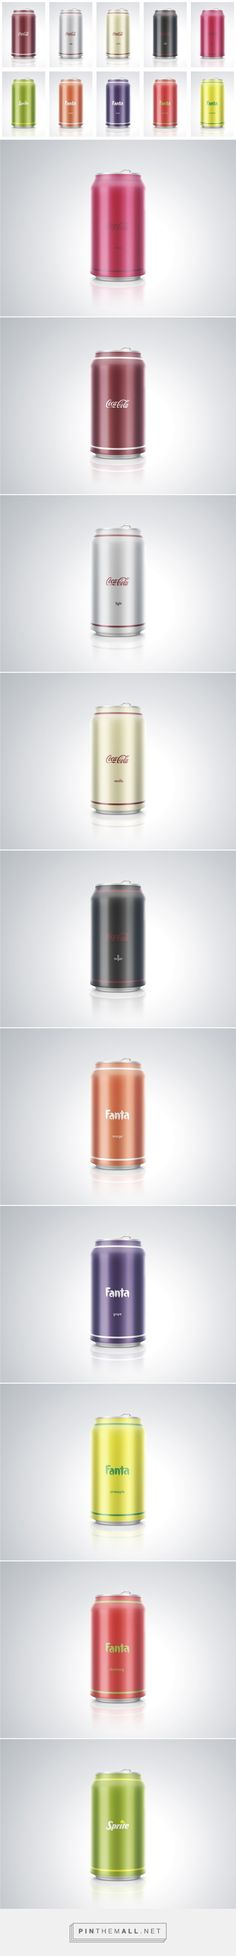 Coca-Colla, Sprite, Fanta – в лаконичном дизайне (Концепт) curated by Packaging Diva PD. Minimalist branded packaging design concepts.